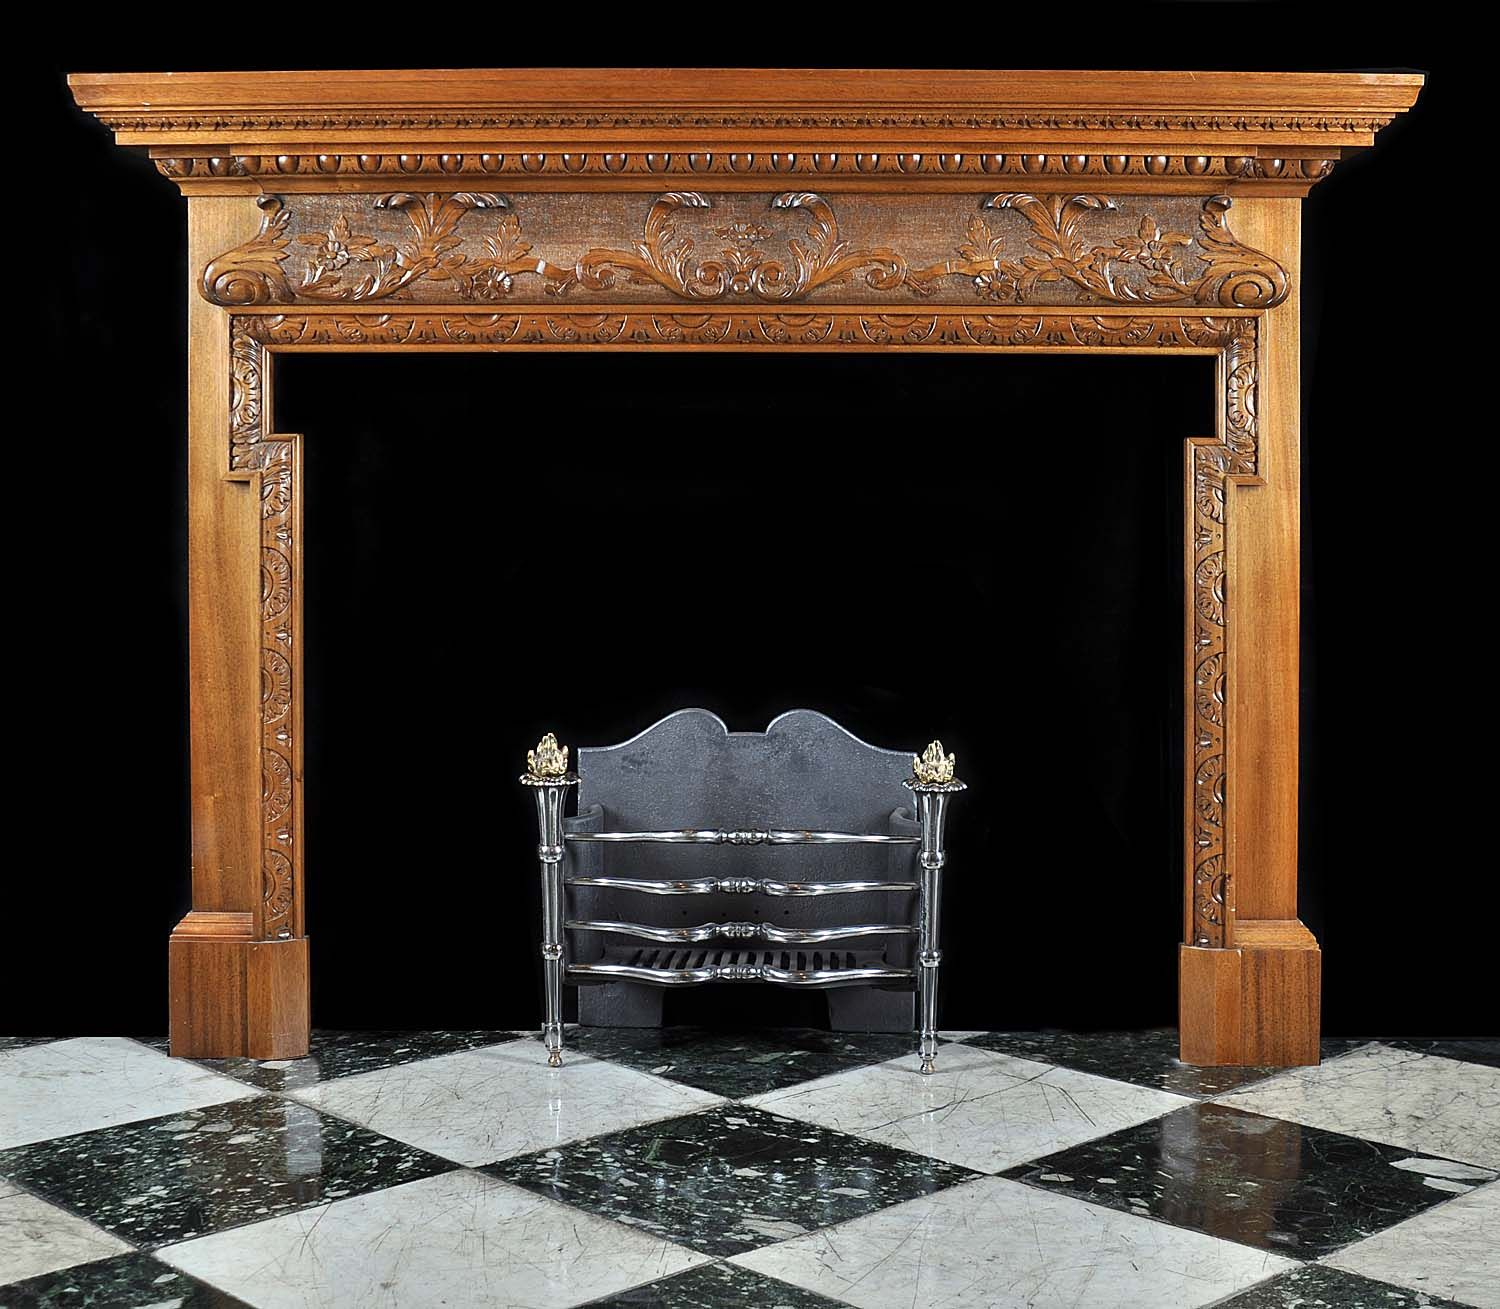 Antique carved Wood Georgian Fireplace Mantel | House ideas ...